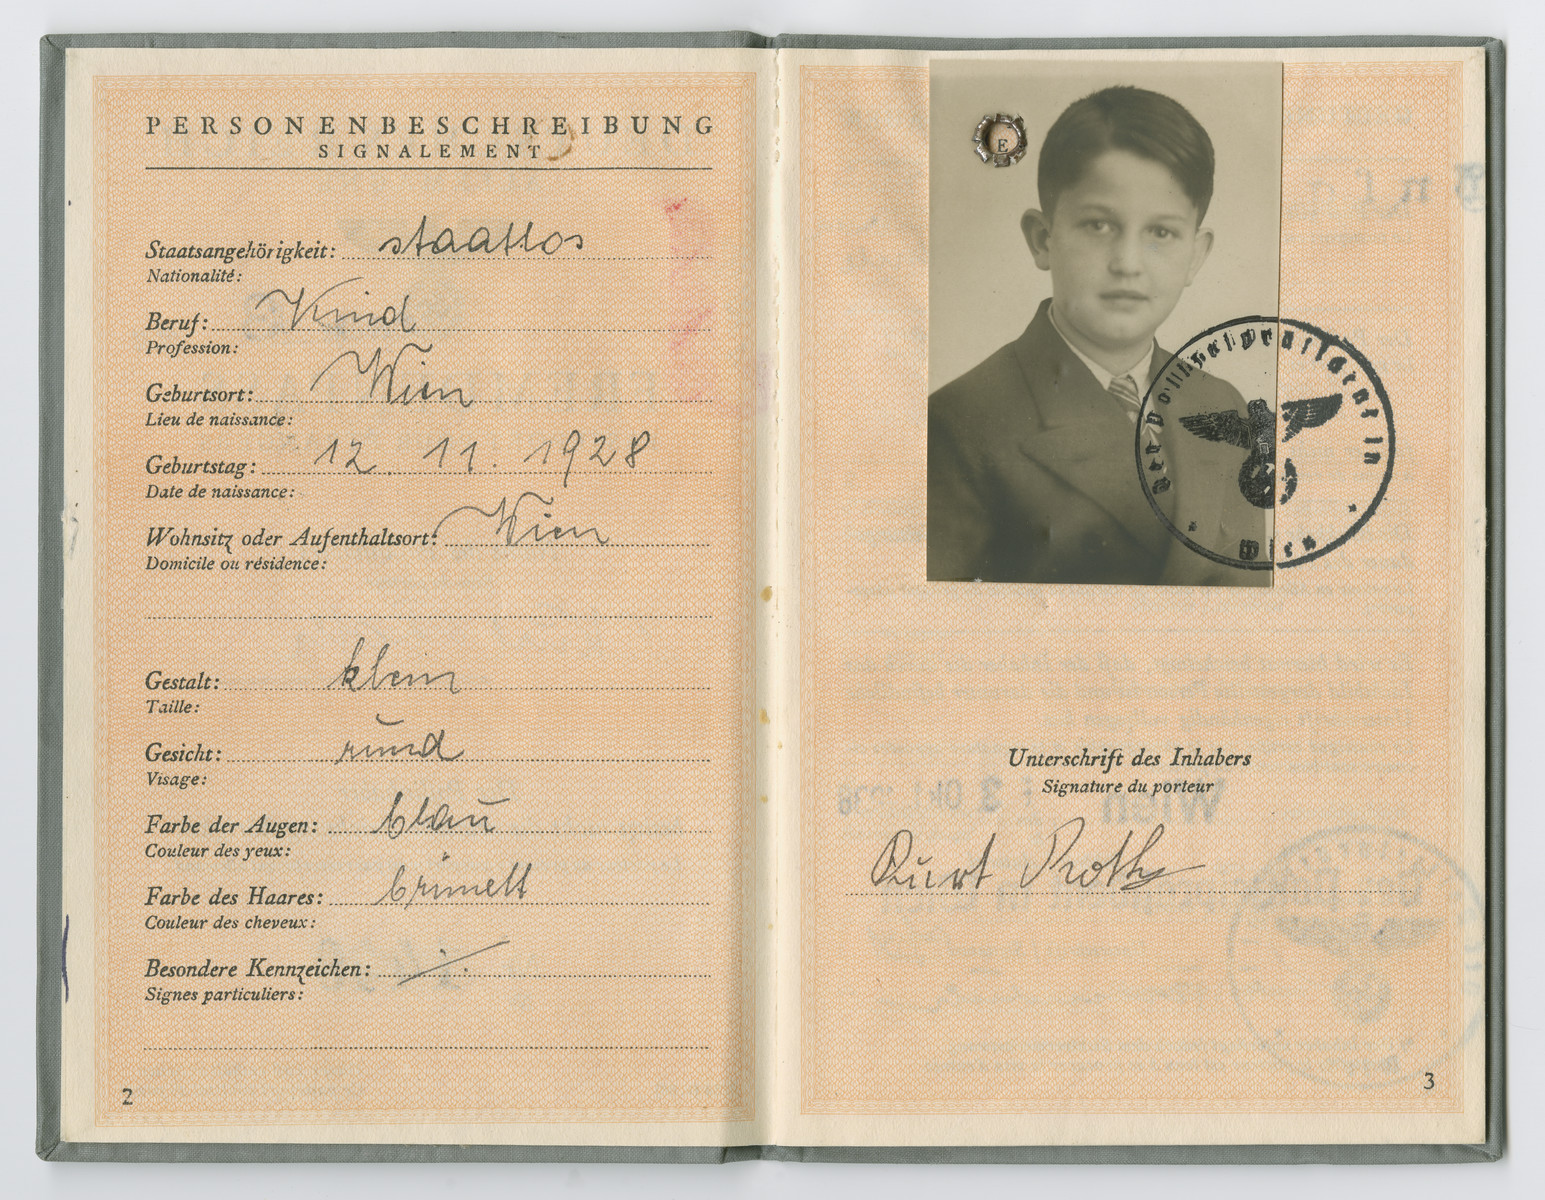 Identification papers issued to Kurt Roth stating he was born in Vienna on November 12, 1928 but is officially stateless.